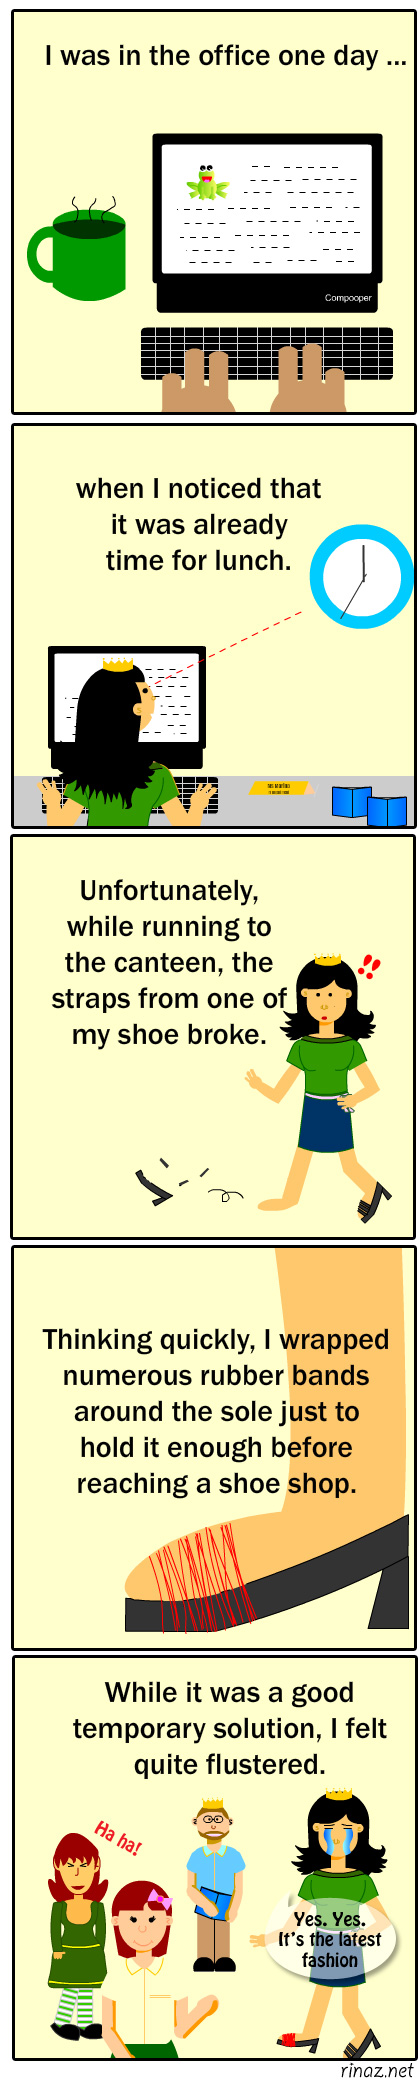 Rinaz.net A true story about shoes